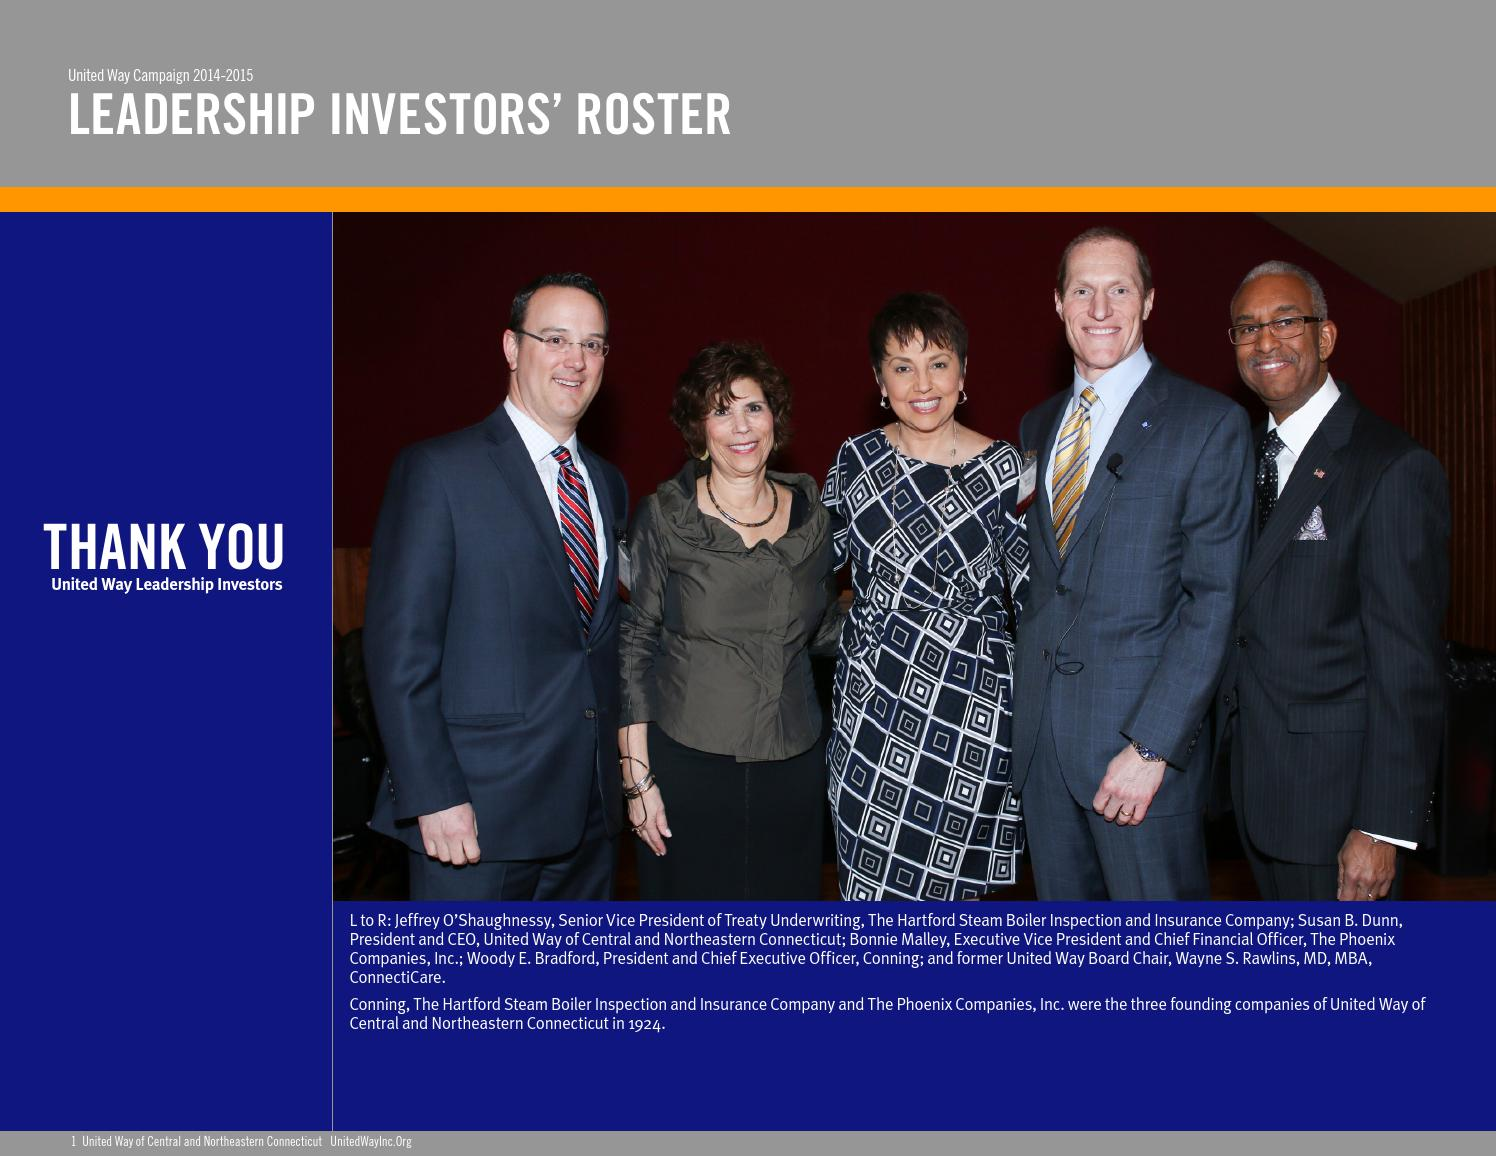 Uwcnct 2014 2015 Leadership Investors Roster By United Way